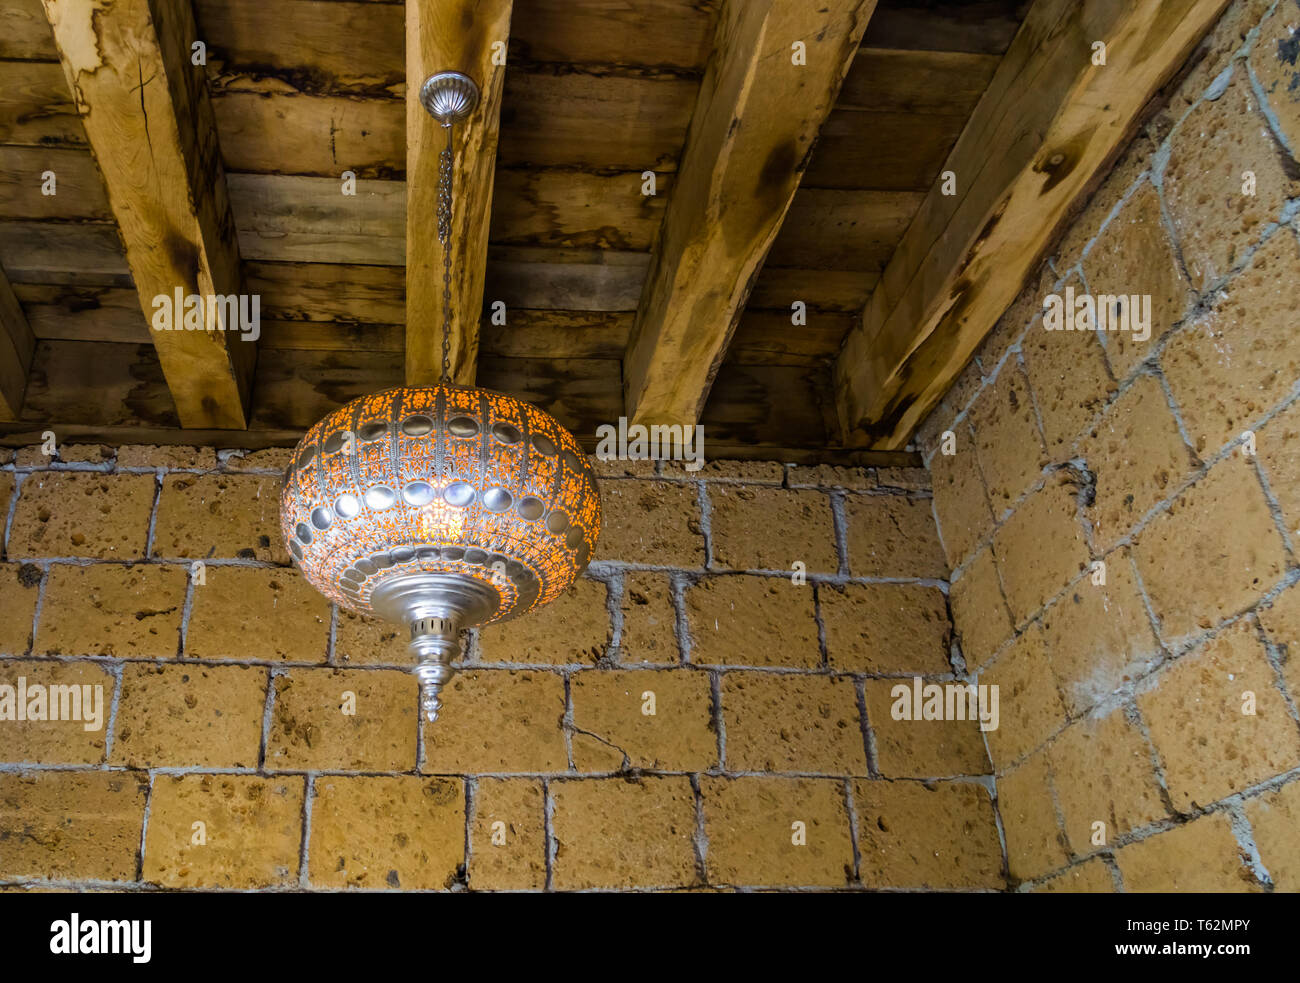 Silver moroccan lighted lantern hanging on a wooden roof, traditional home interiors and decorations - Stock Image